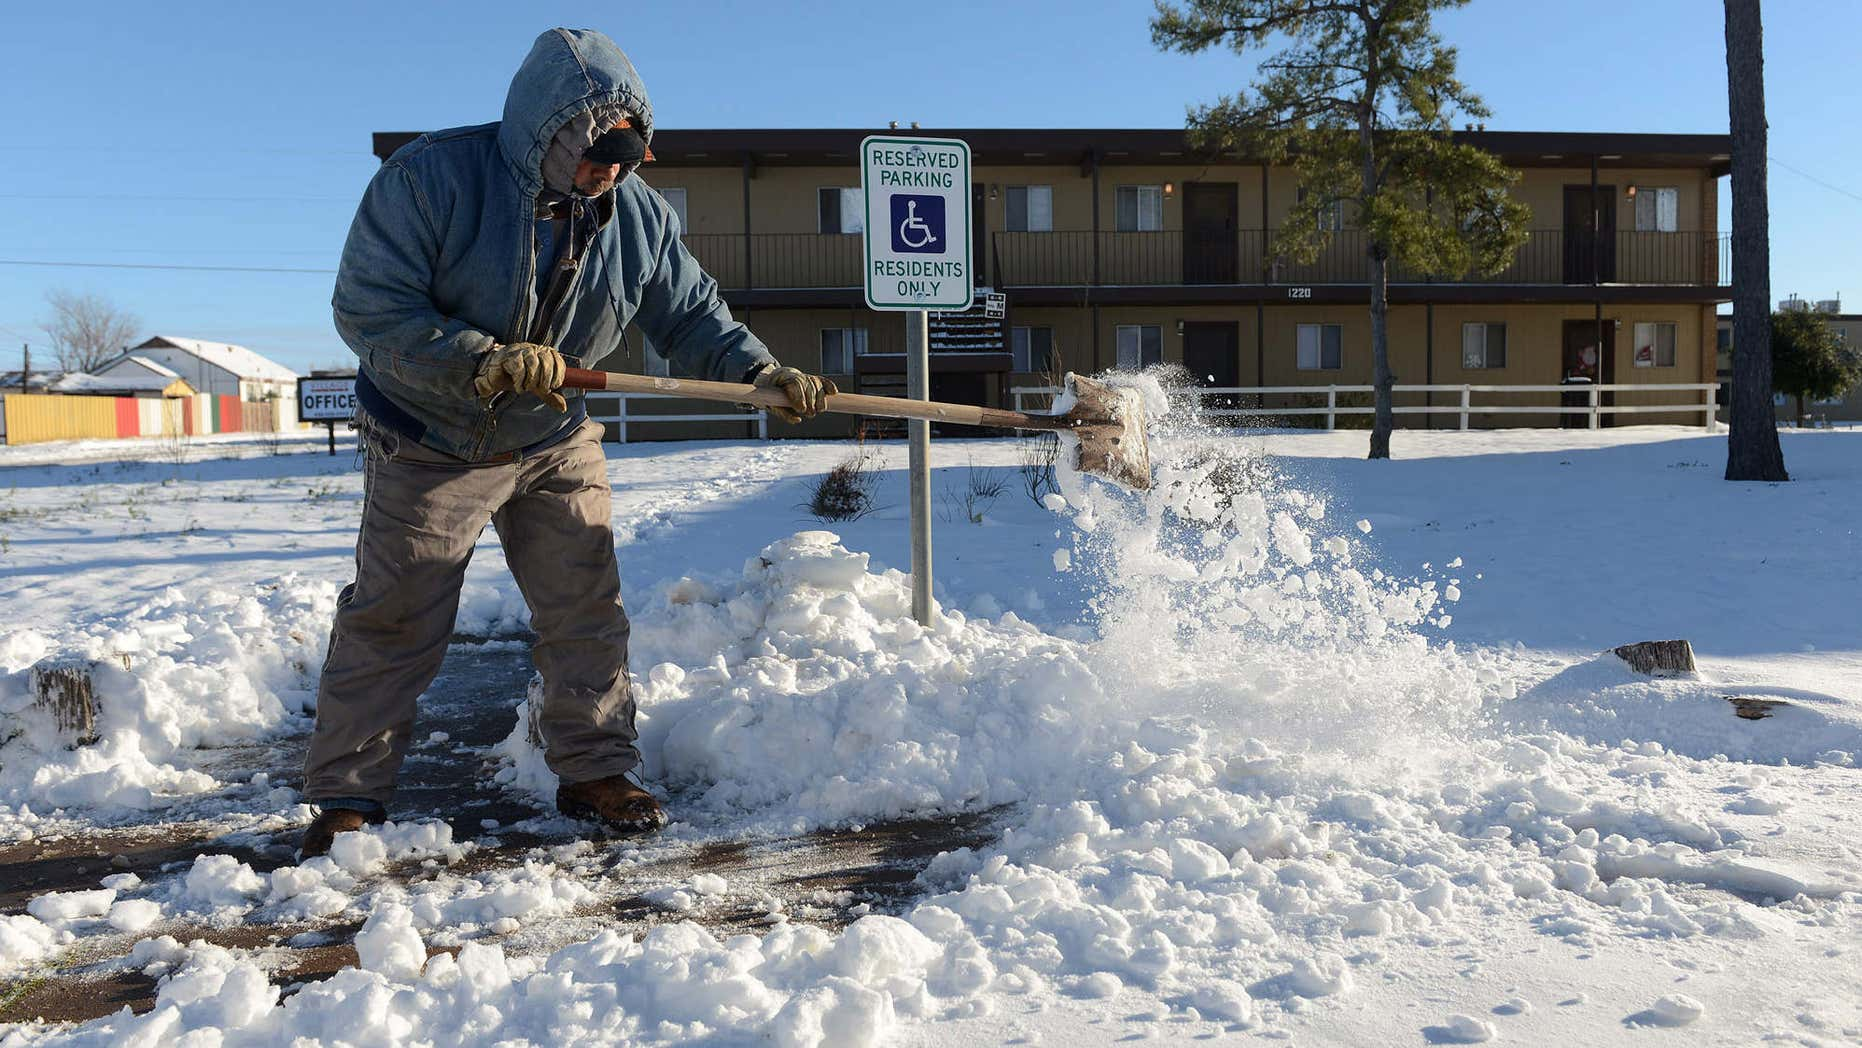 Dec. 28, 2015: Ismael Avelar, maintenance employee for the Village Place Apartments, shovels snow Monday morning from the walkway to the apartment complex office in Odessa, Texas.